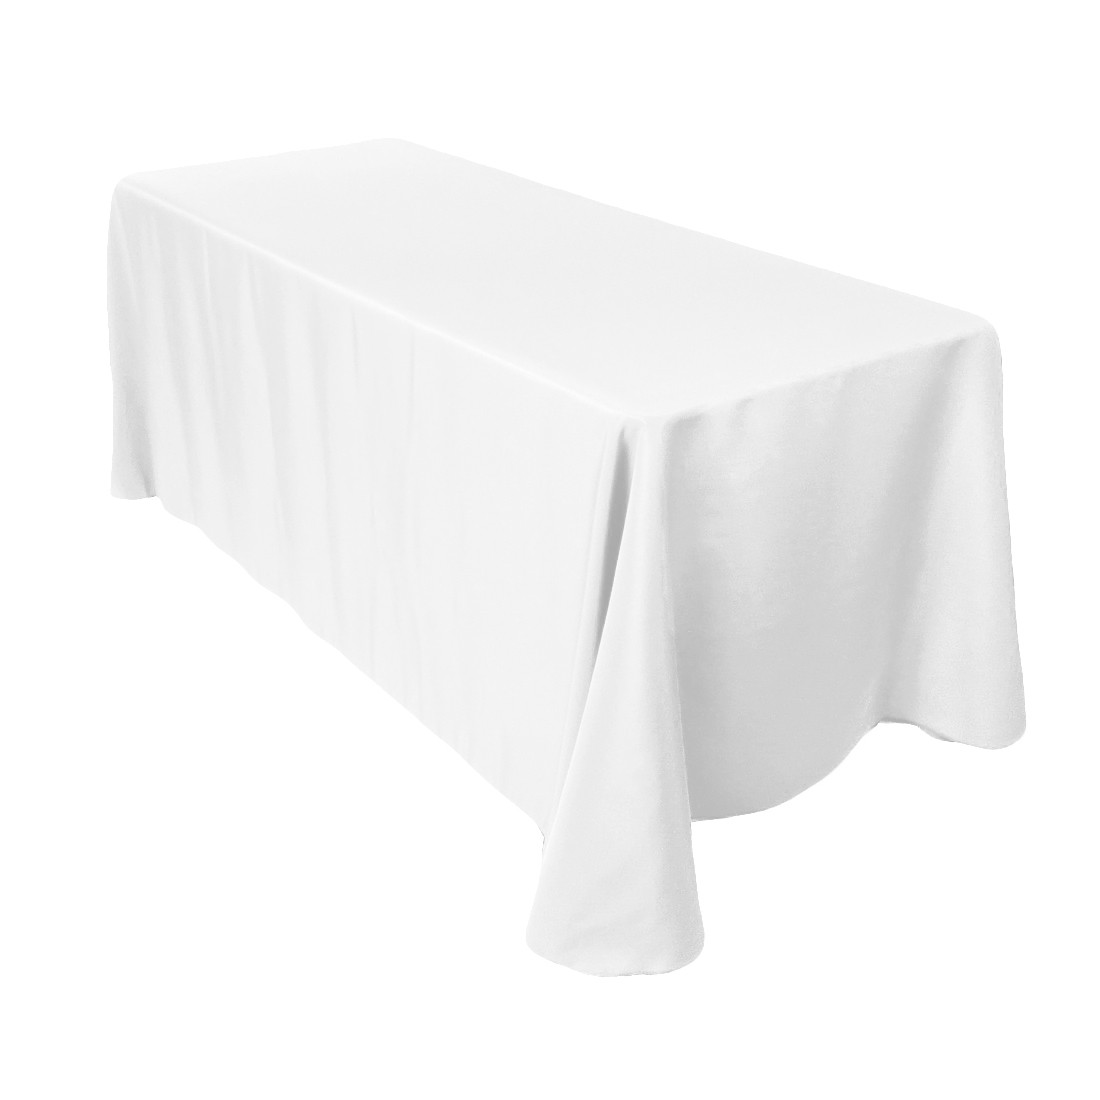 Wondrous Oblong Tablecloth for Dining Decor Ideas: Bright White Oblong Tablecloth For Home Decor